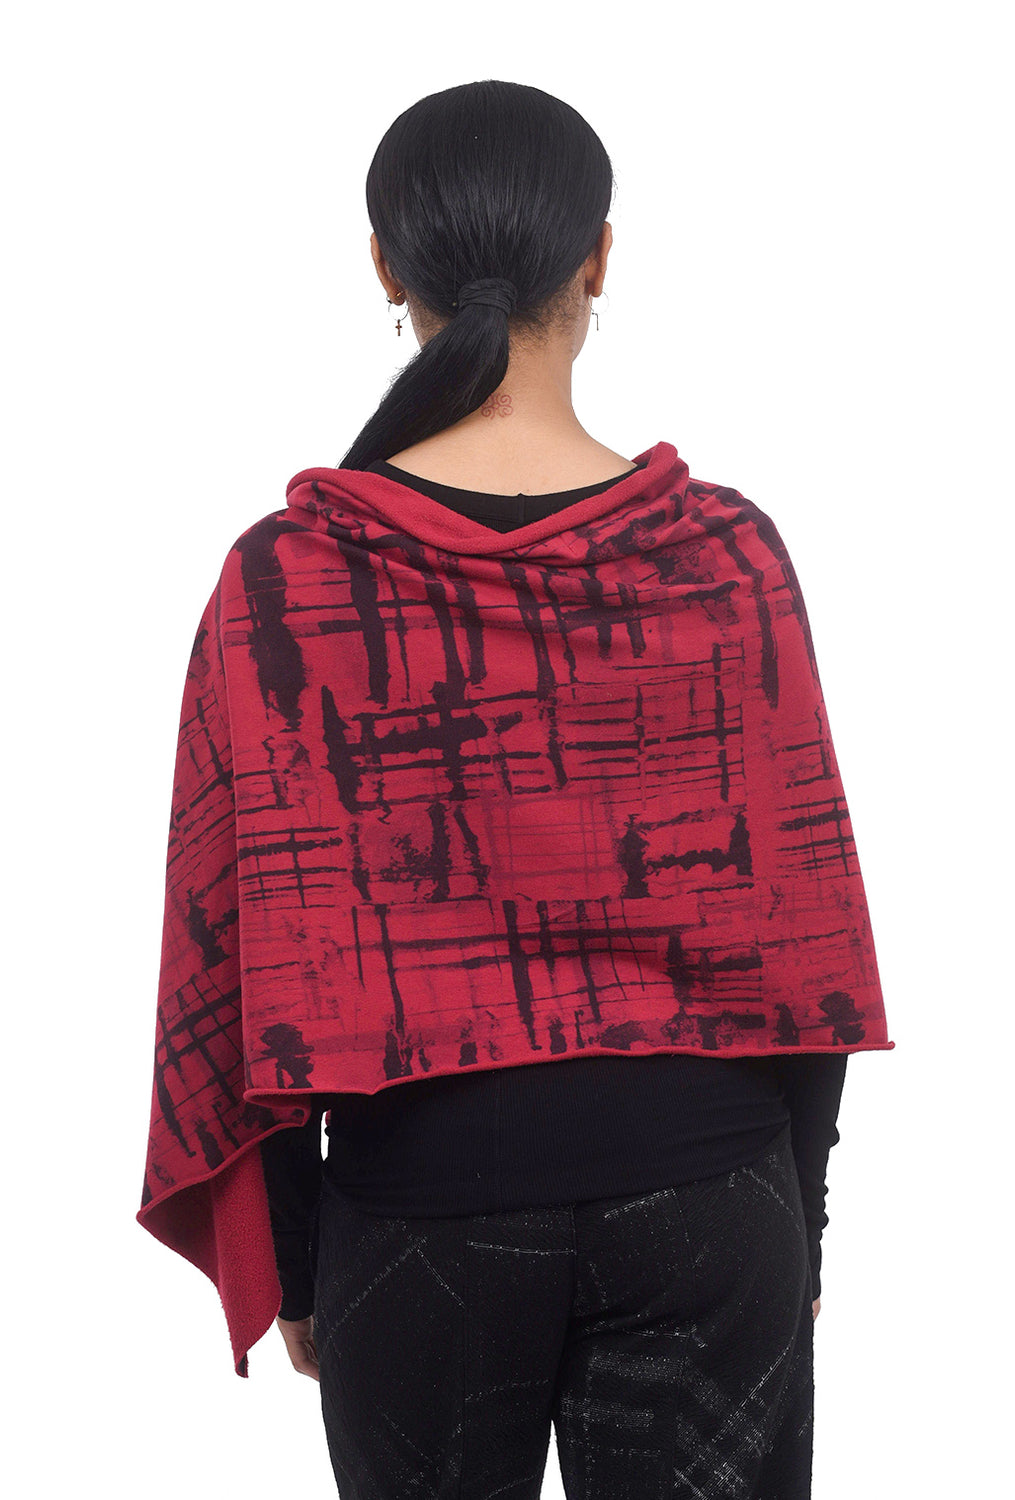 Fenini Printed FT Shawl, Red One Size Red